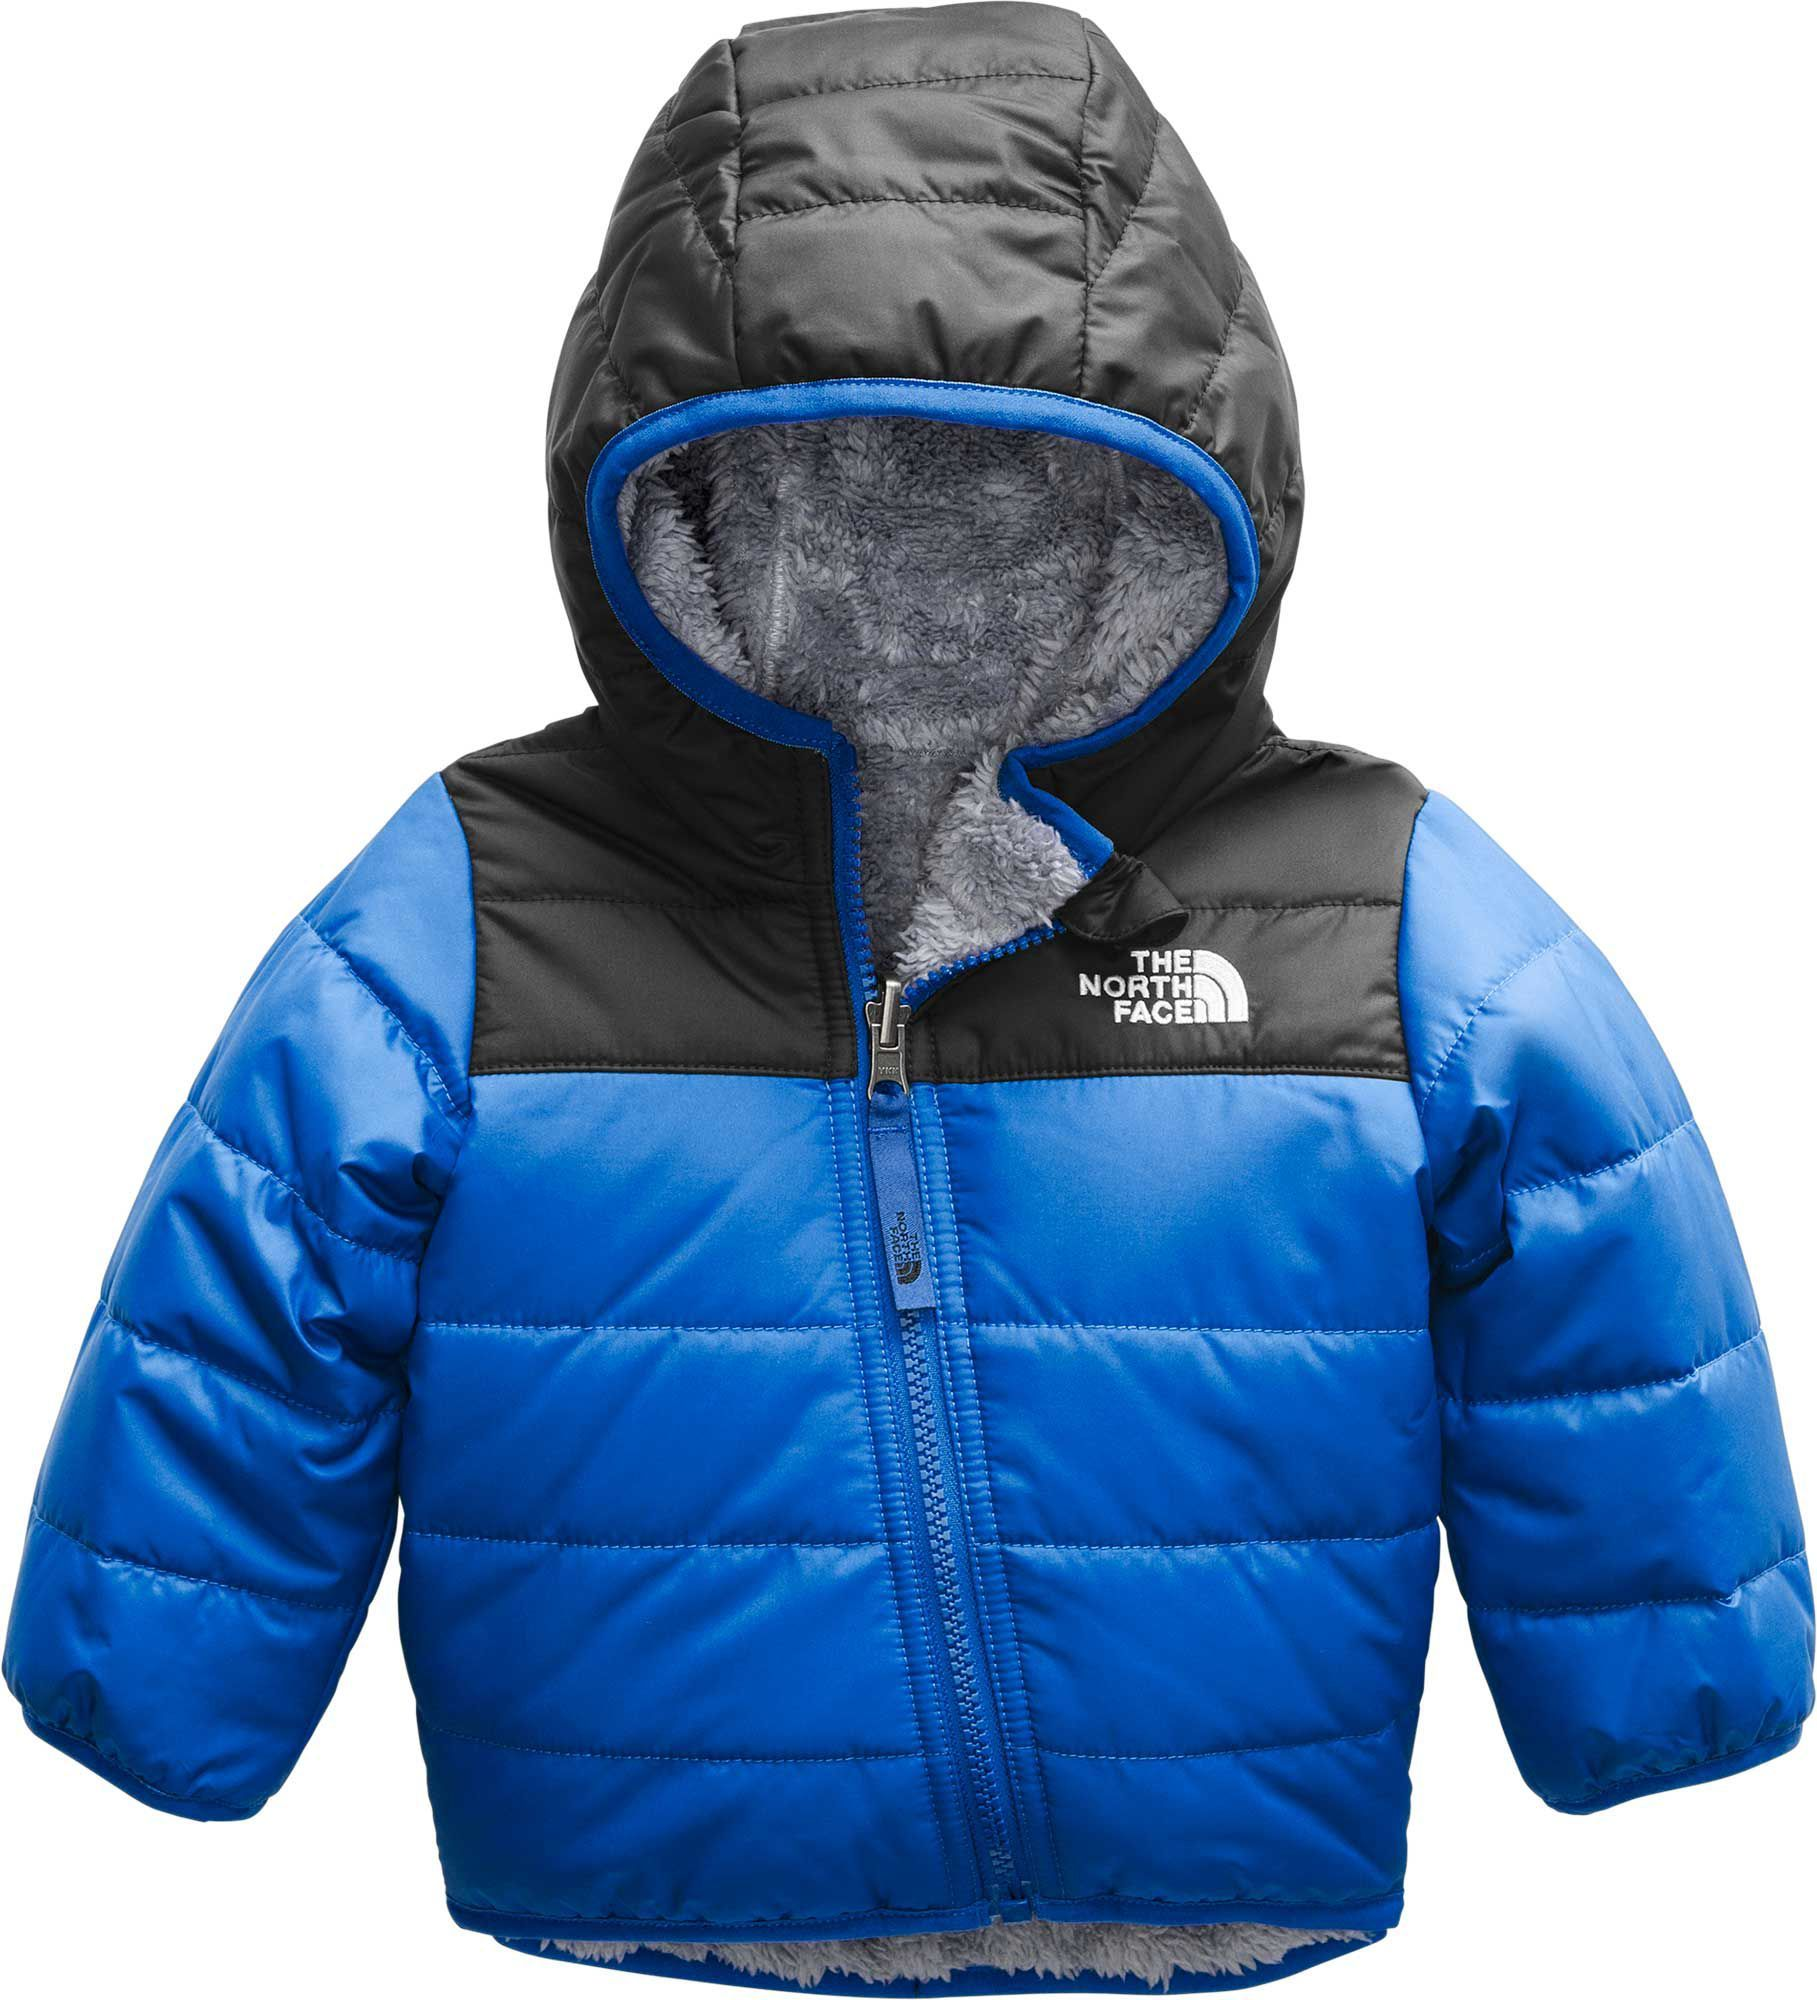 3c5f6a8f4e The North Face Infant Reversible Mount Chimborazo Hoodie